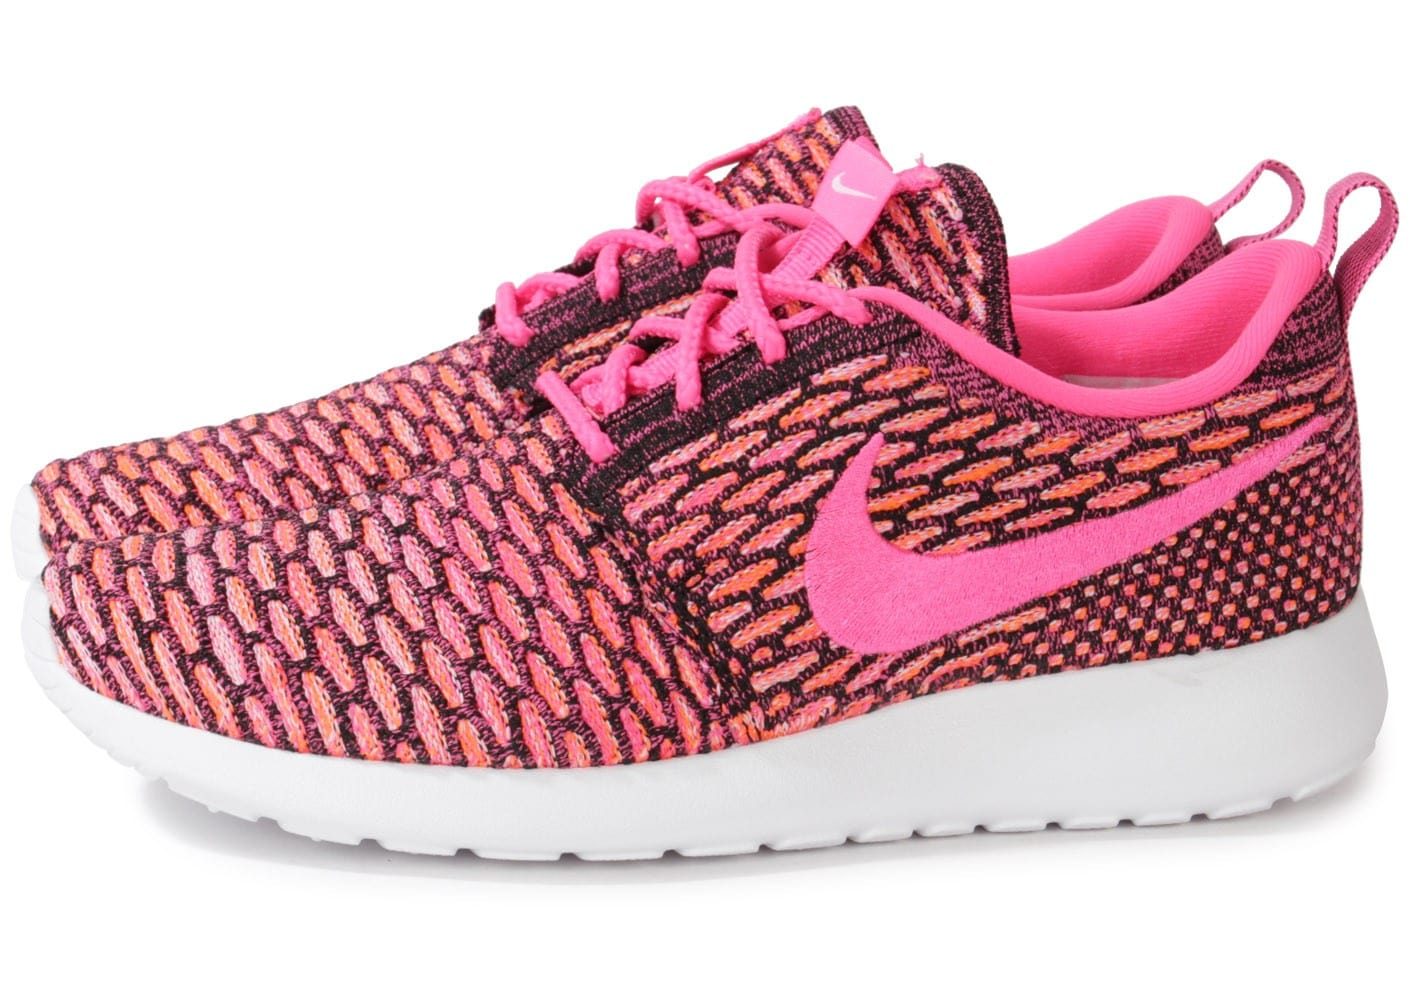 detailed look 68017 296f0 ... store cliquez pour zoomer chaussures nike roshe run flyknit rose vue  extérieure 74fd3 9595c